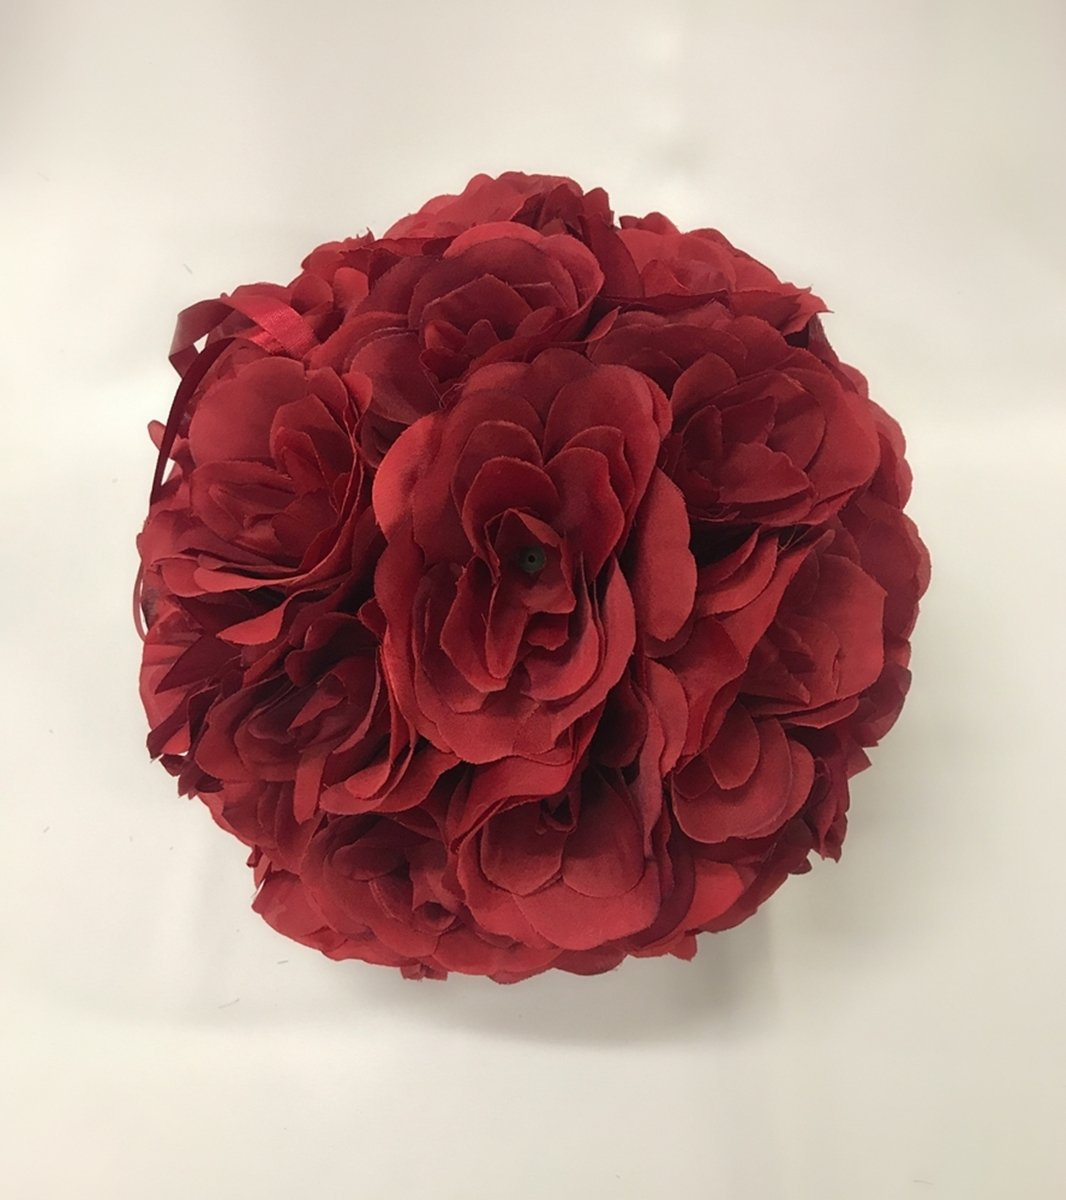 MicroMall-984-Inch-Romantic-Rose-Pomander-Flower-Balls-for-Wedding-Centerpieces-Decorations-Multicolour-Wine-Red